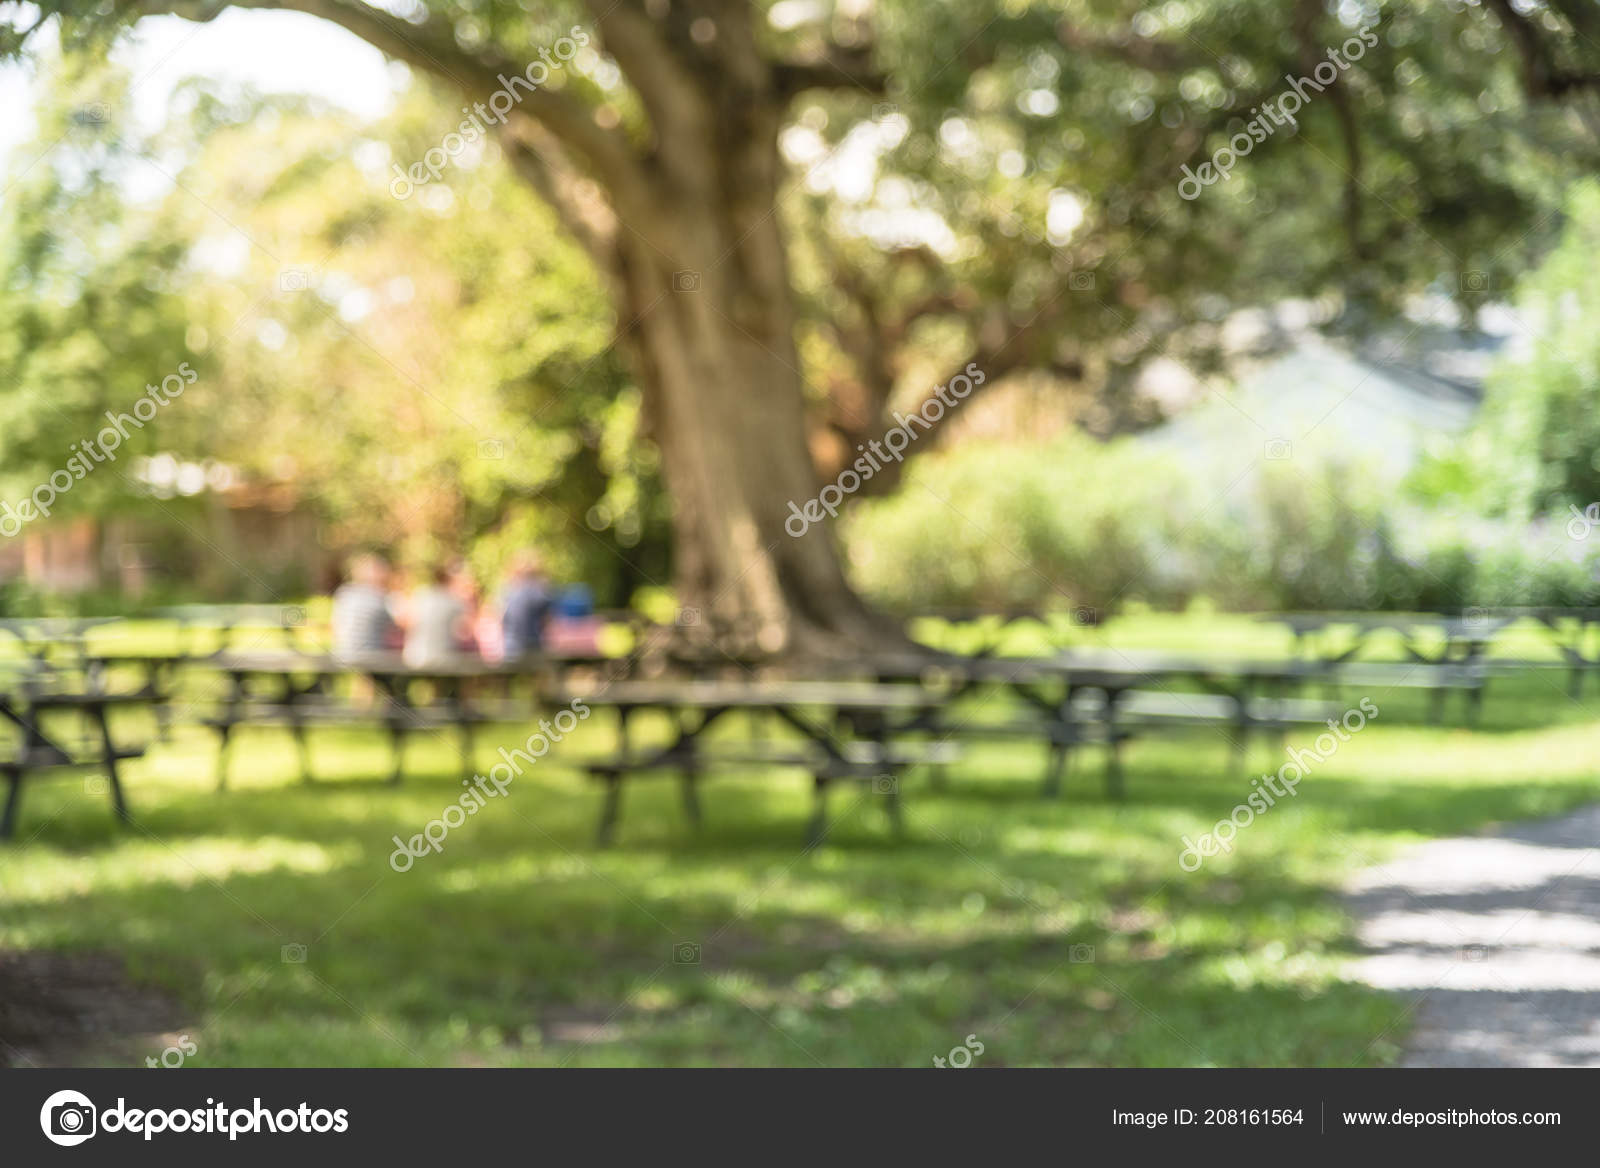 Blurred Image Picnic Tables Green Grass People Having Lunch